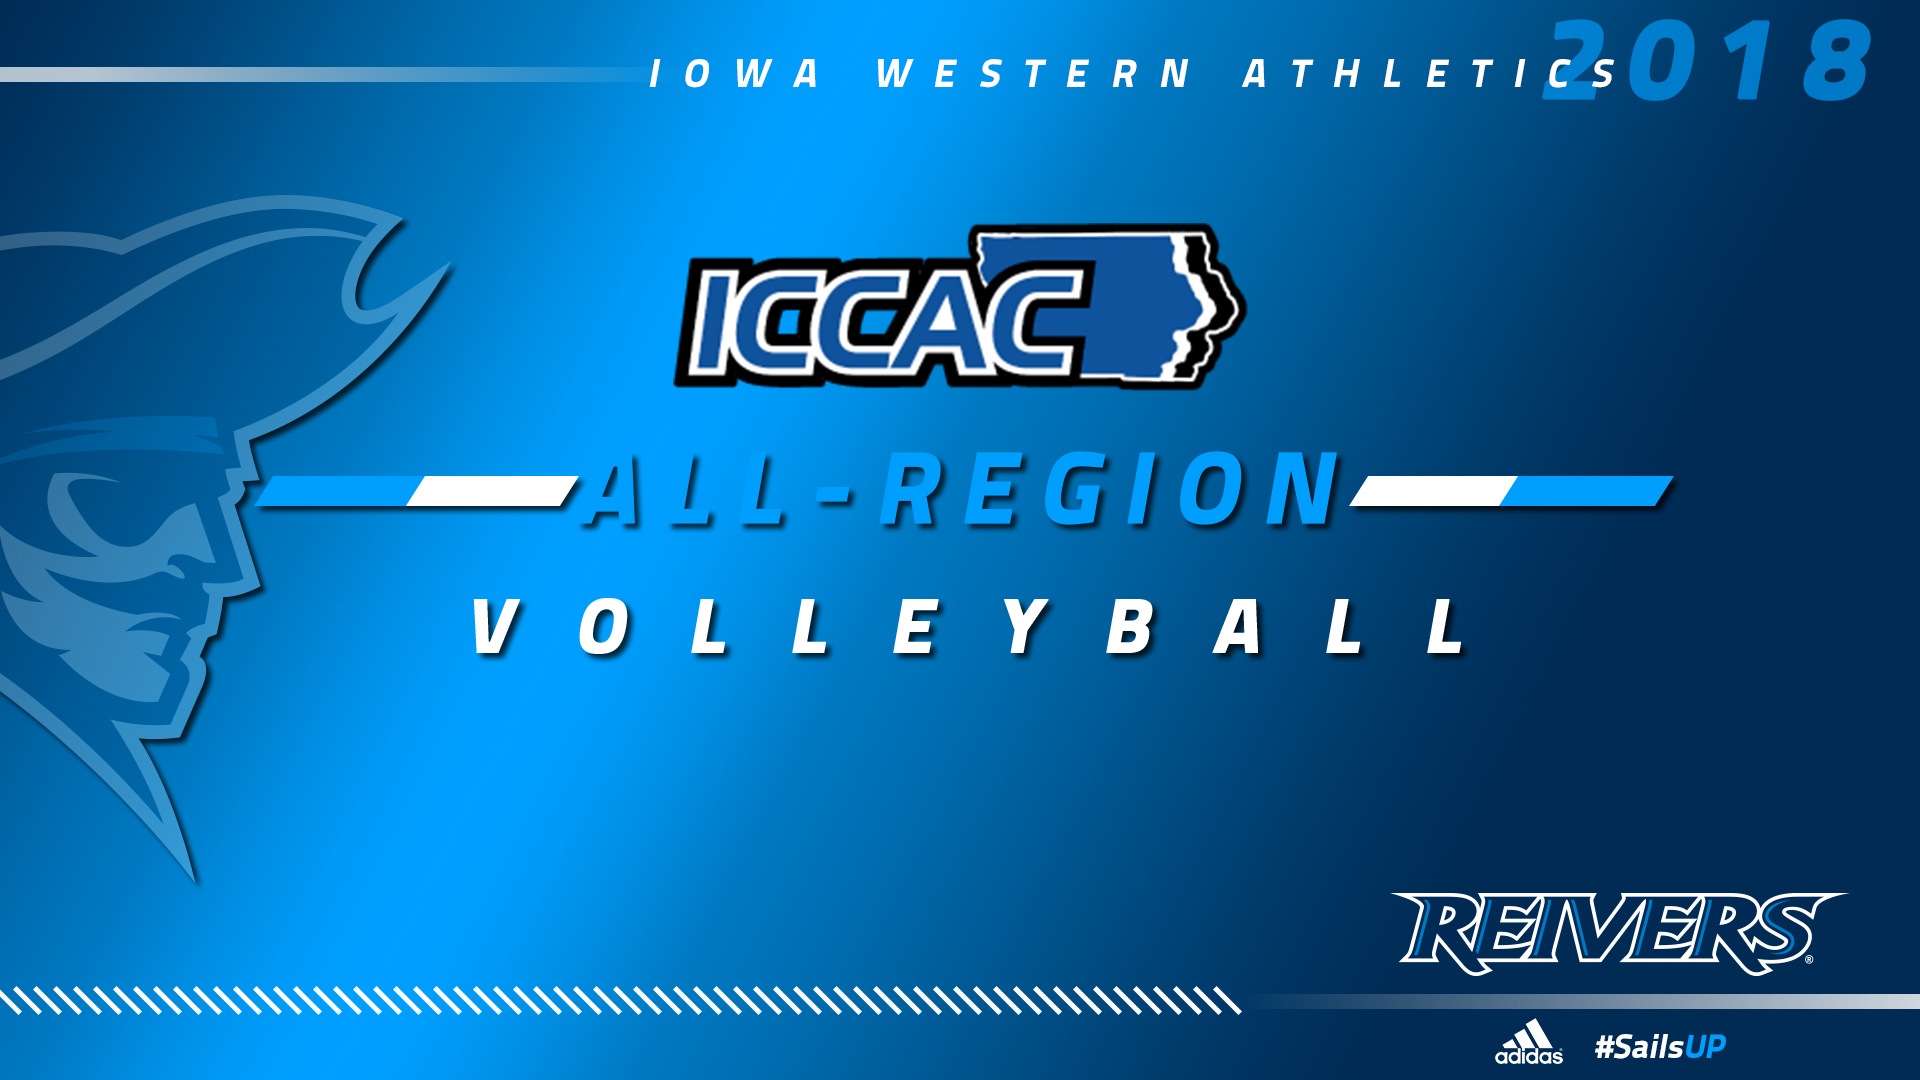 4 Reivers named ICCAC D1 All-Region Team, also snag Coach & Player of the Year honors.